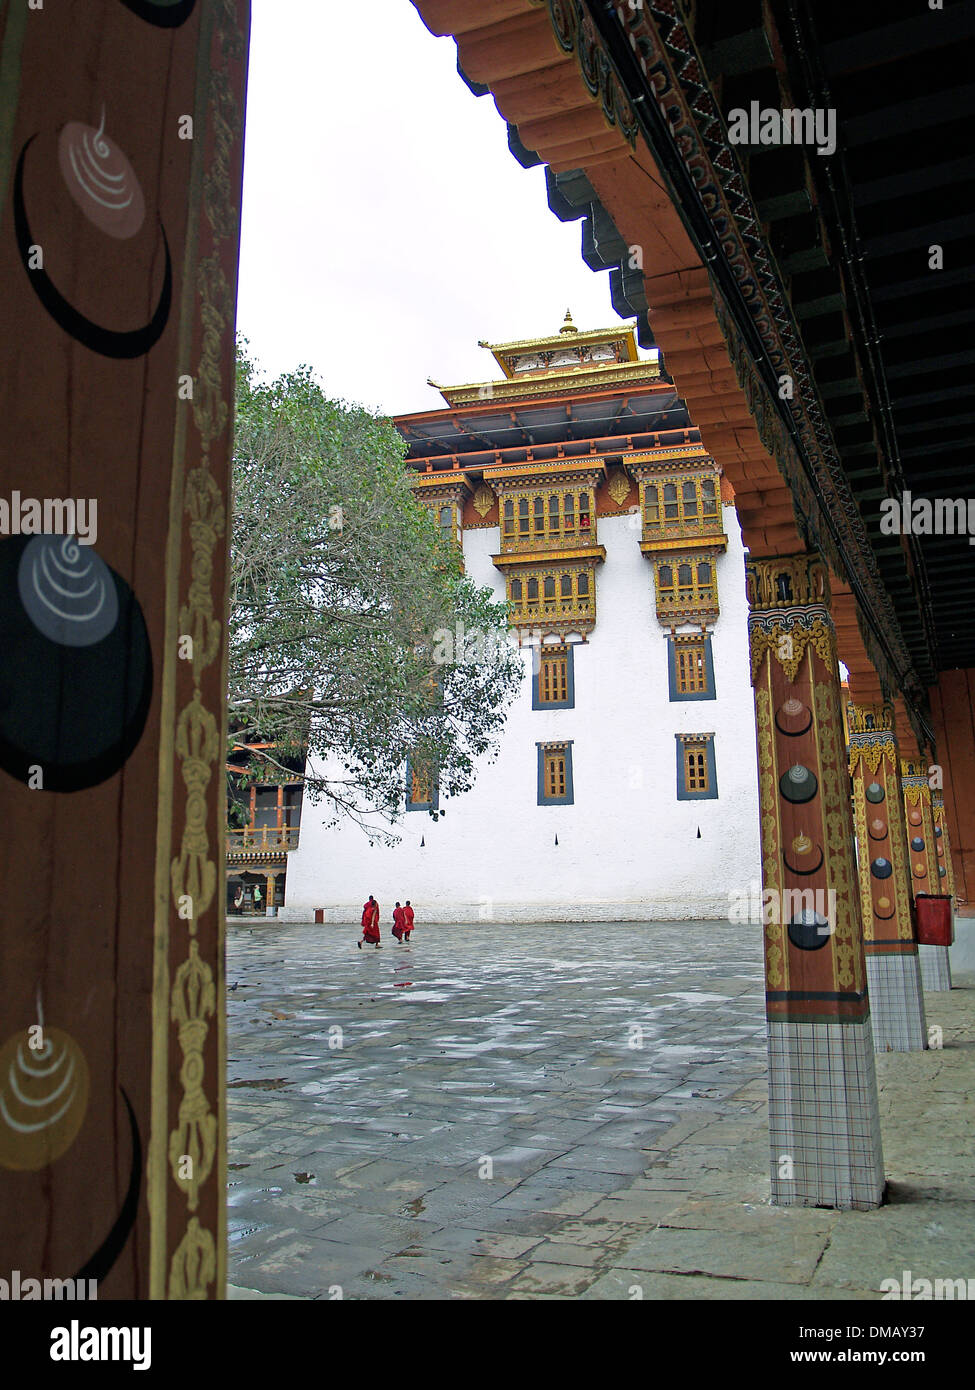 The arcaded courtyard of the Punakha Dzong,Bhutan - Stock Image